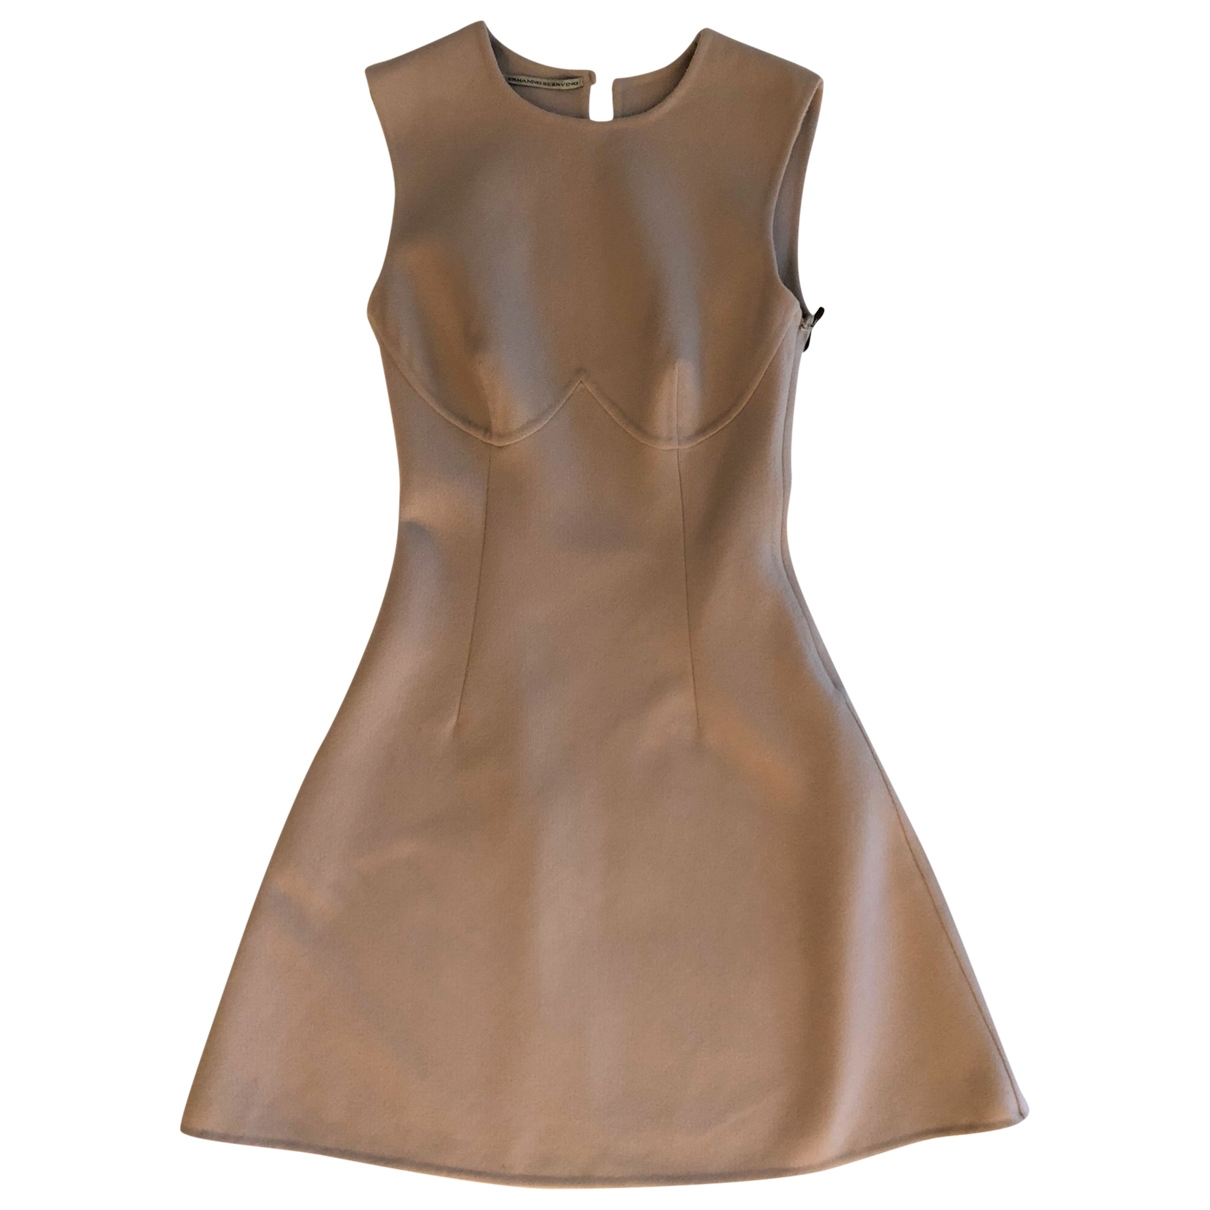 Ermanno Scervino \N Beige Wool dress for Women 40 IT